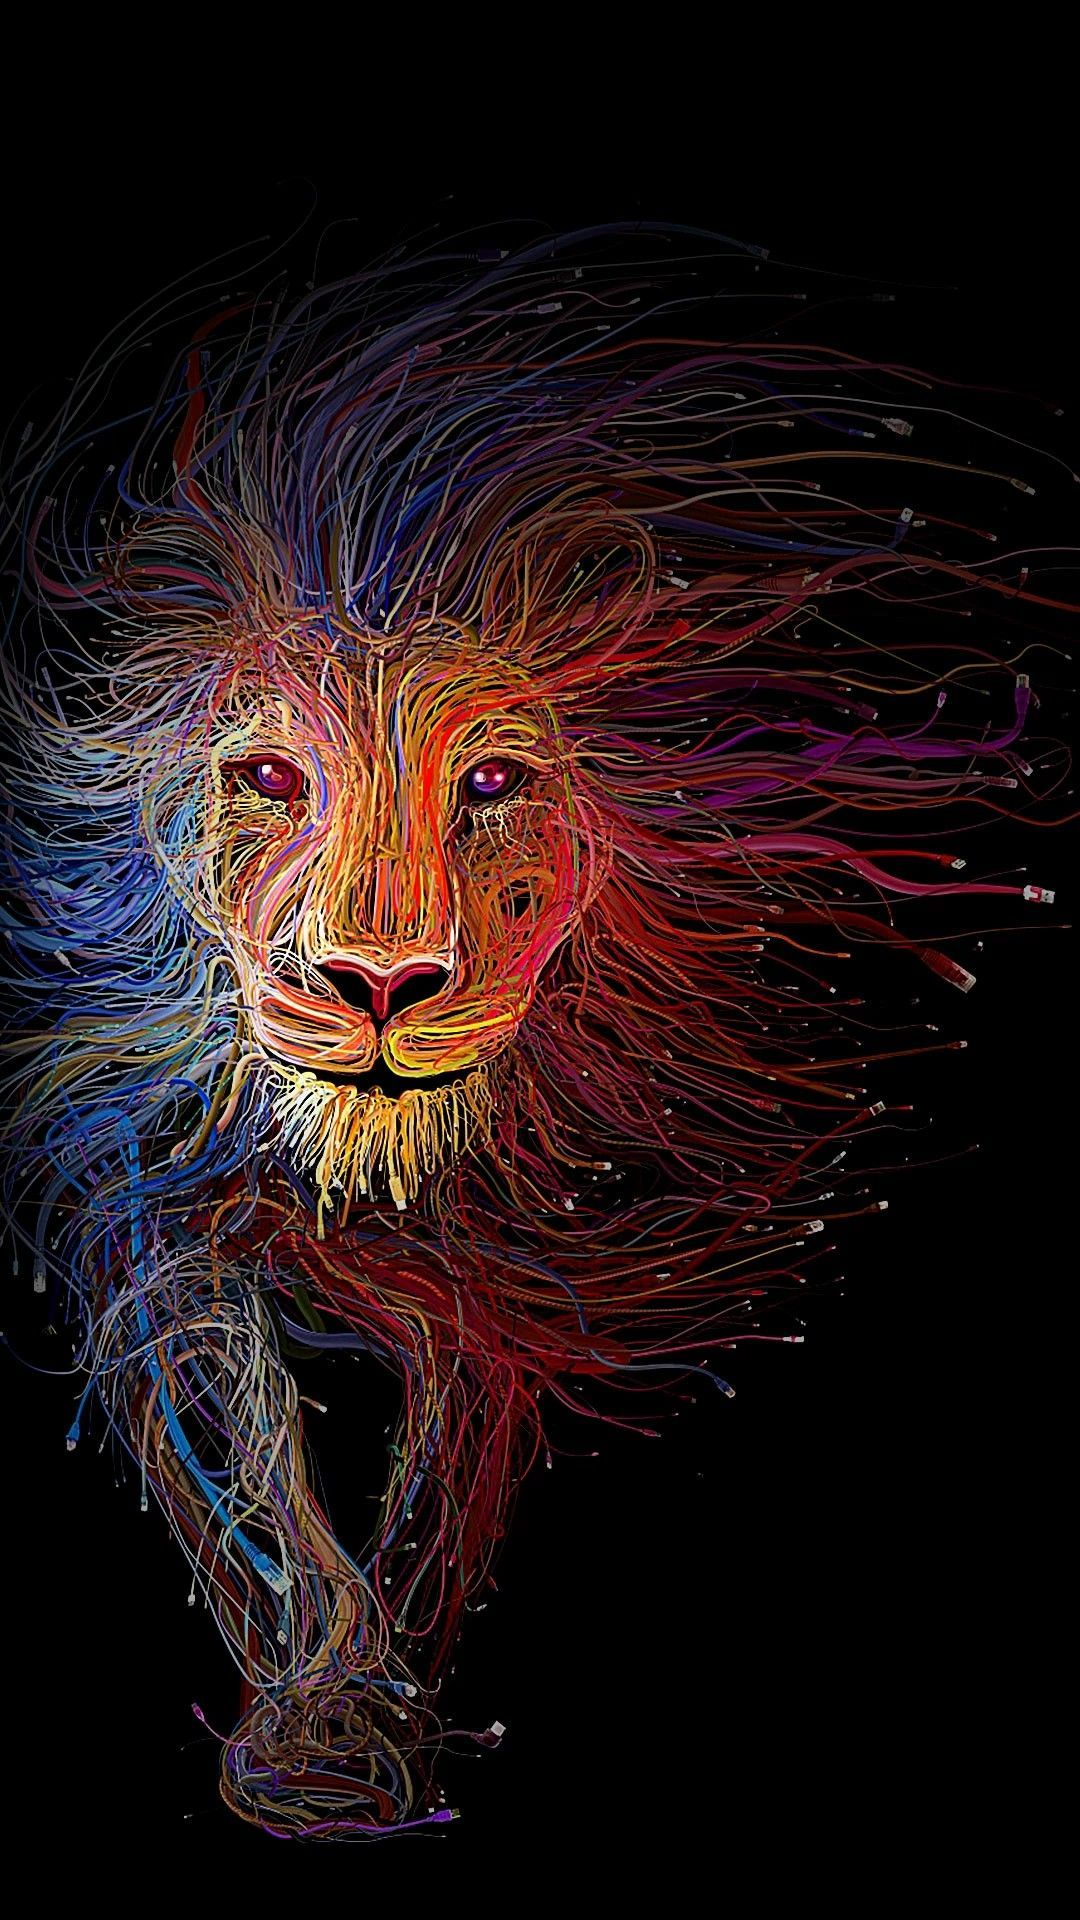 Iphone Lion Wallpaper Colorful Abstract Pictures Www Picturesboss Com